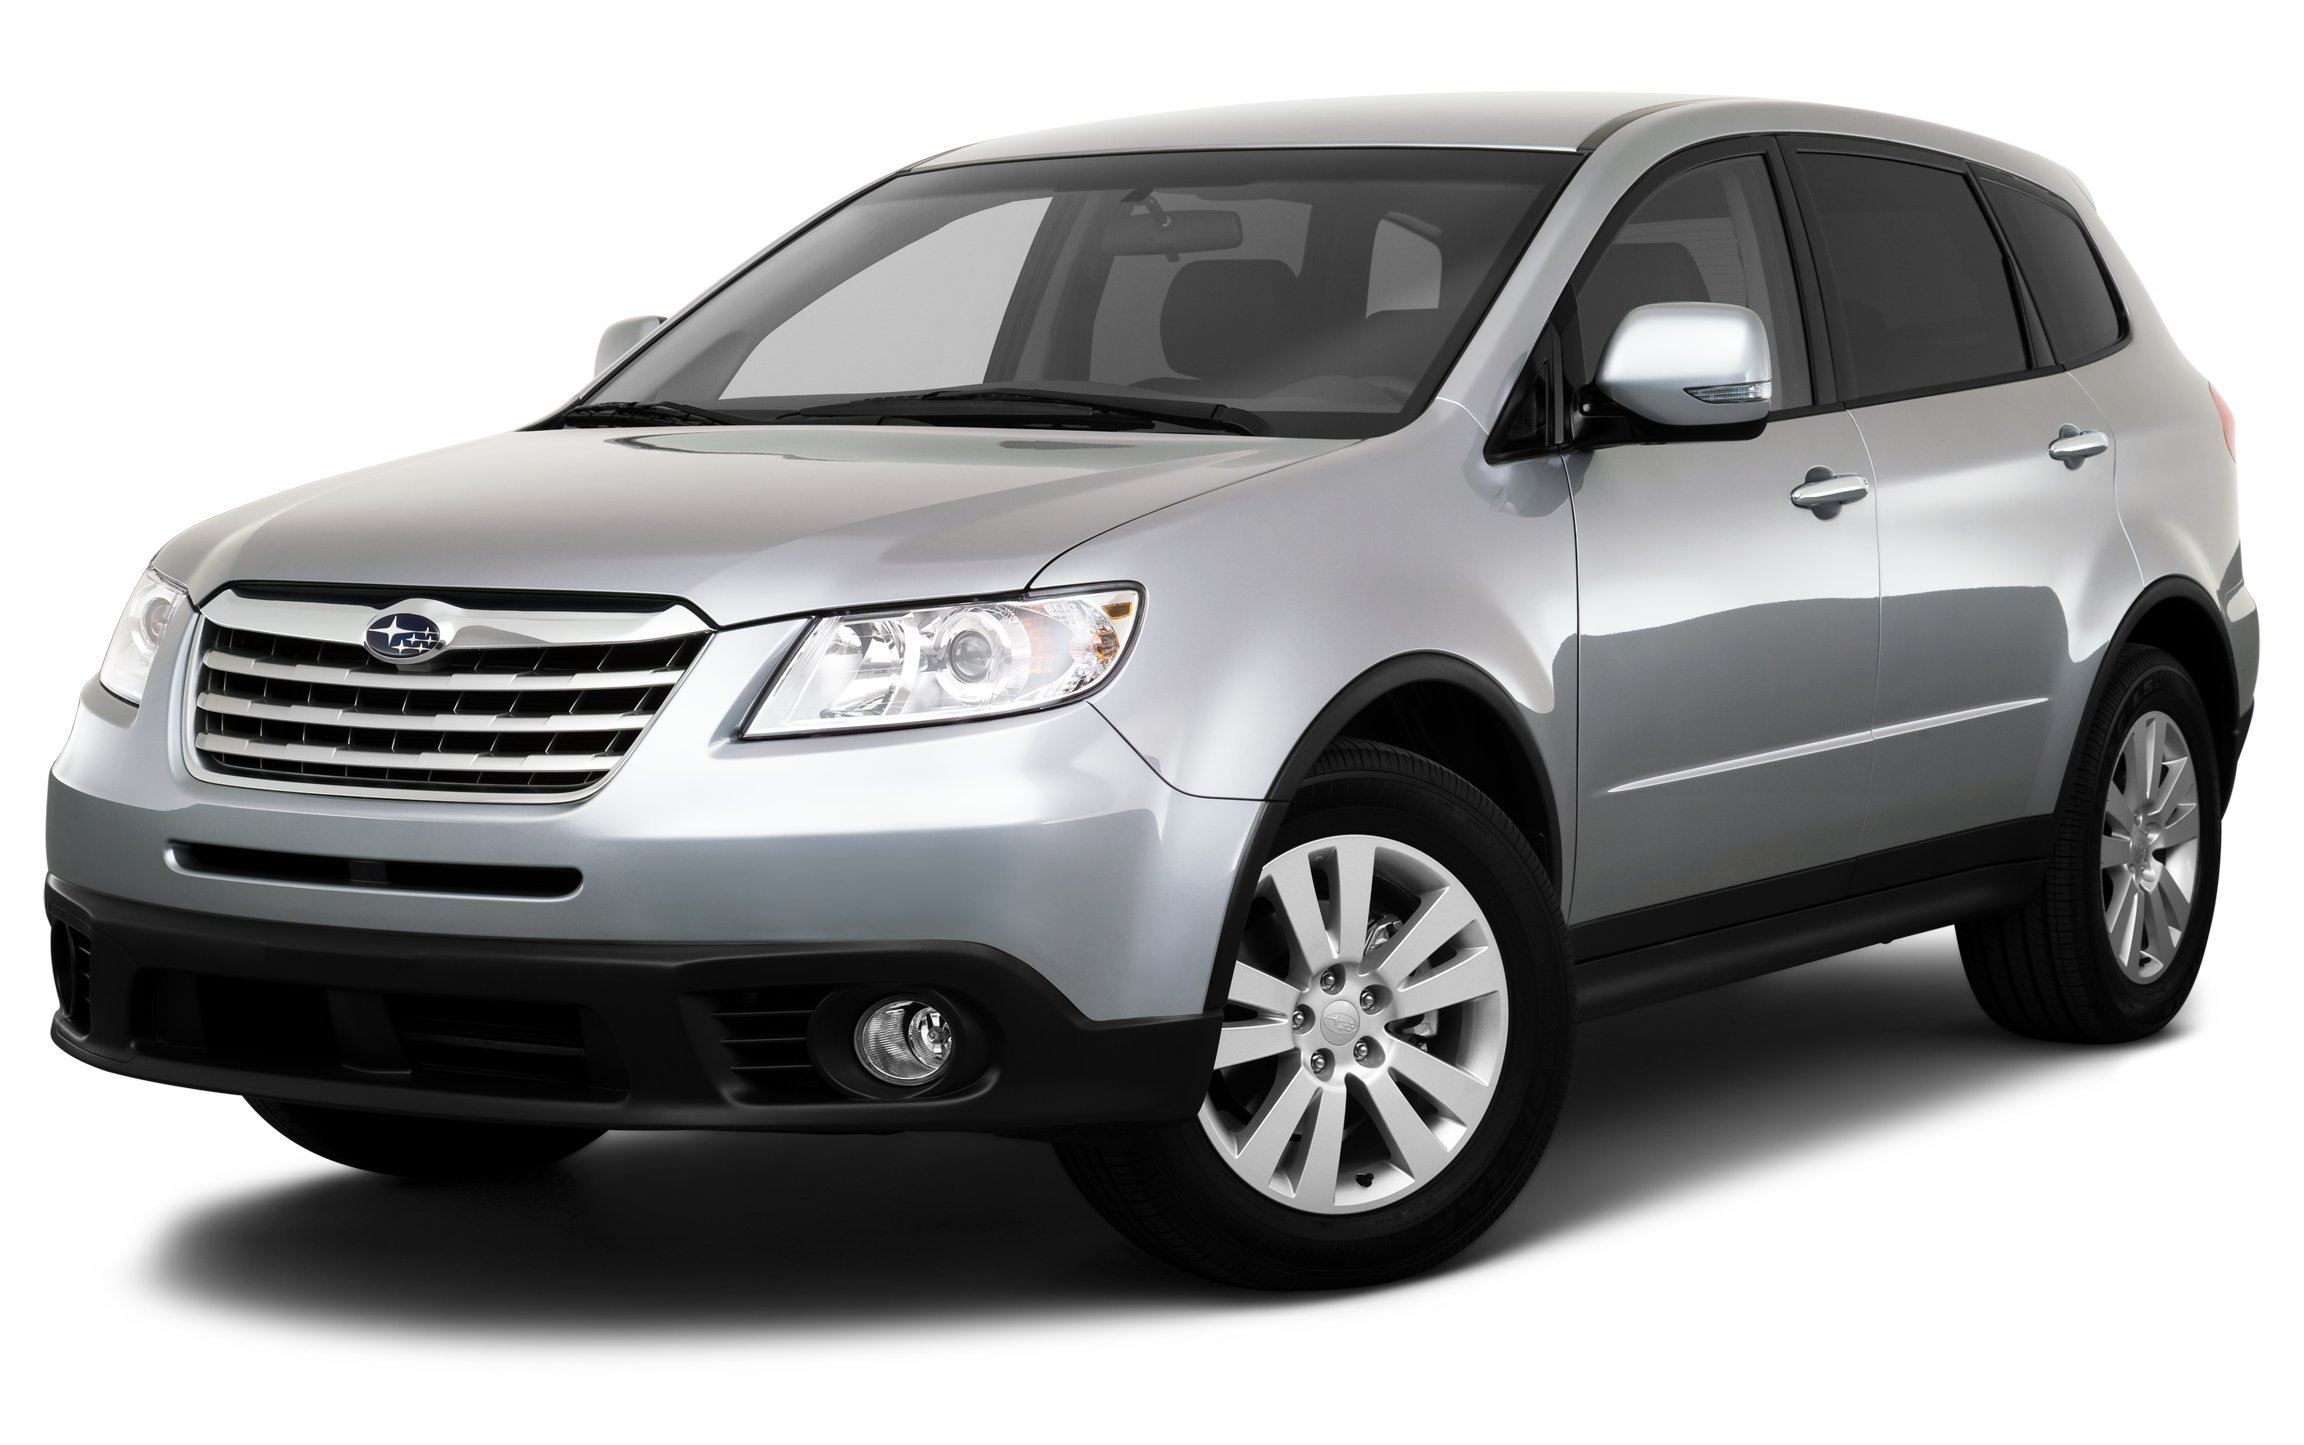 Amazon 2010 subaru tribeca reviews images and specs vehicles 2010 subaru tribeca 36r limited 4 door vanachro Gallery